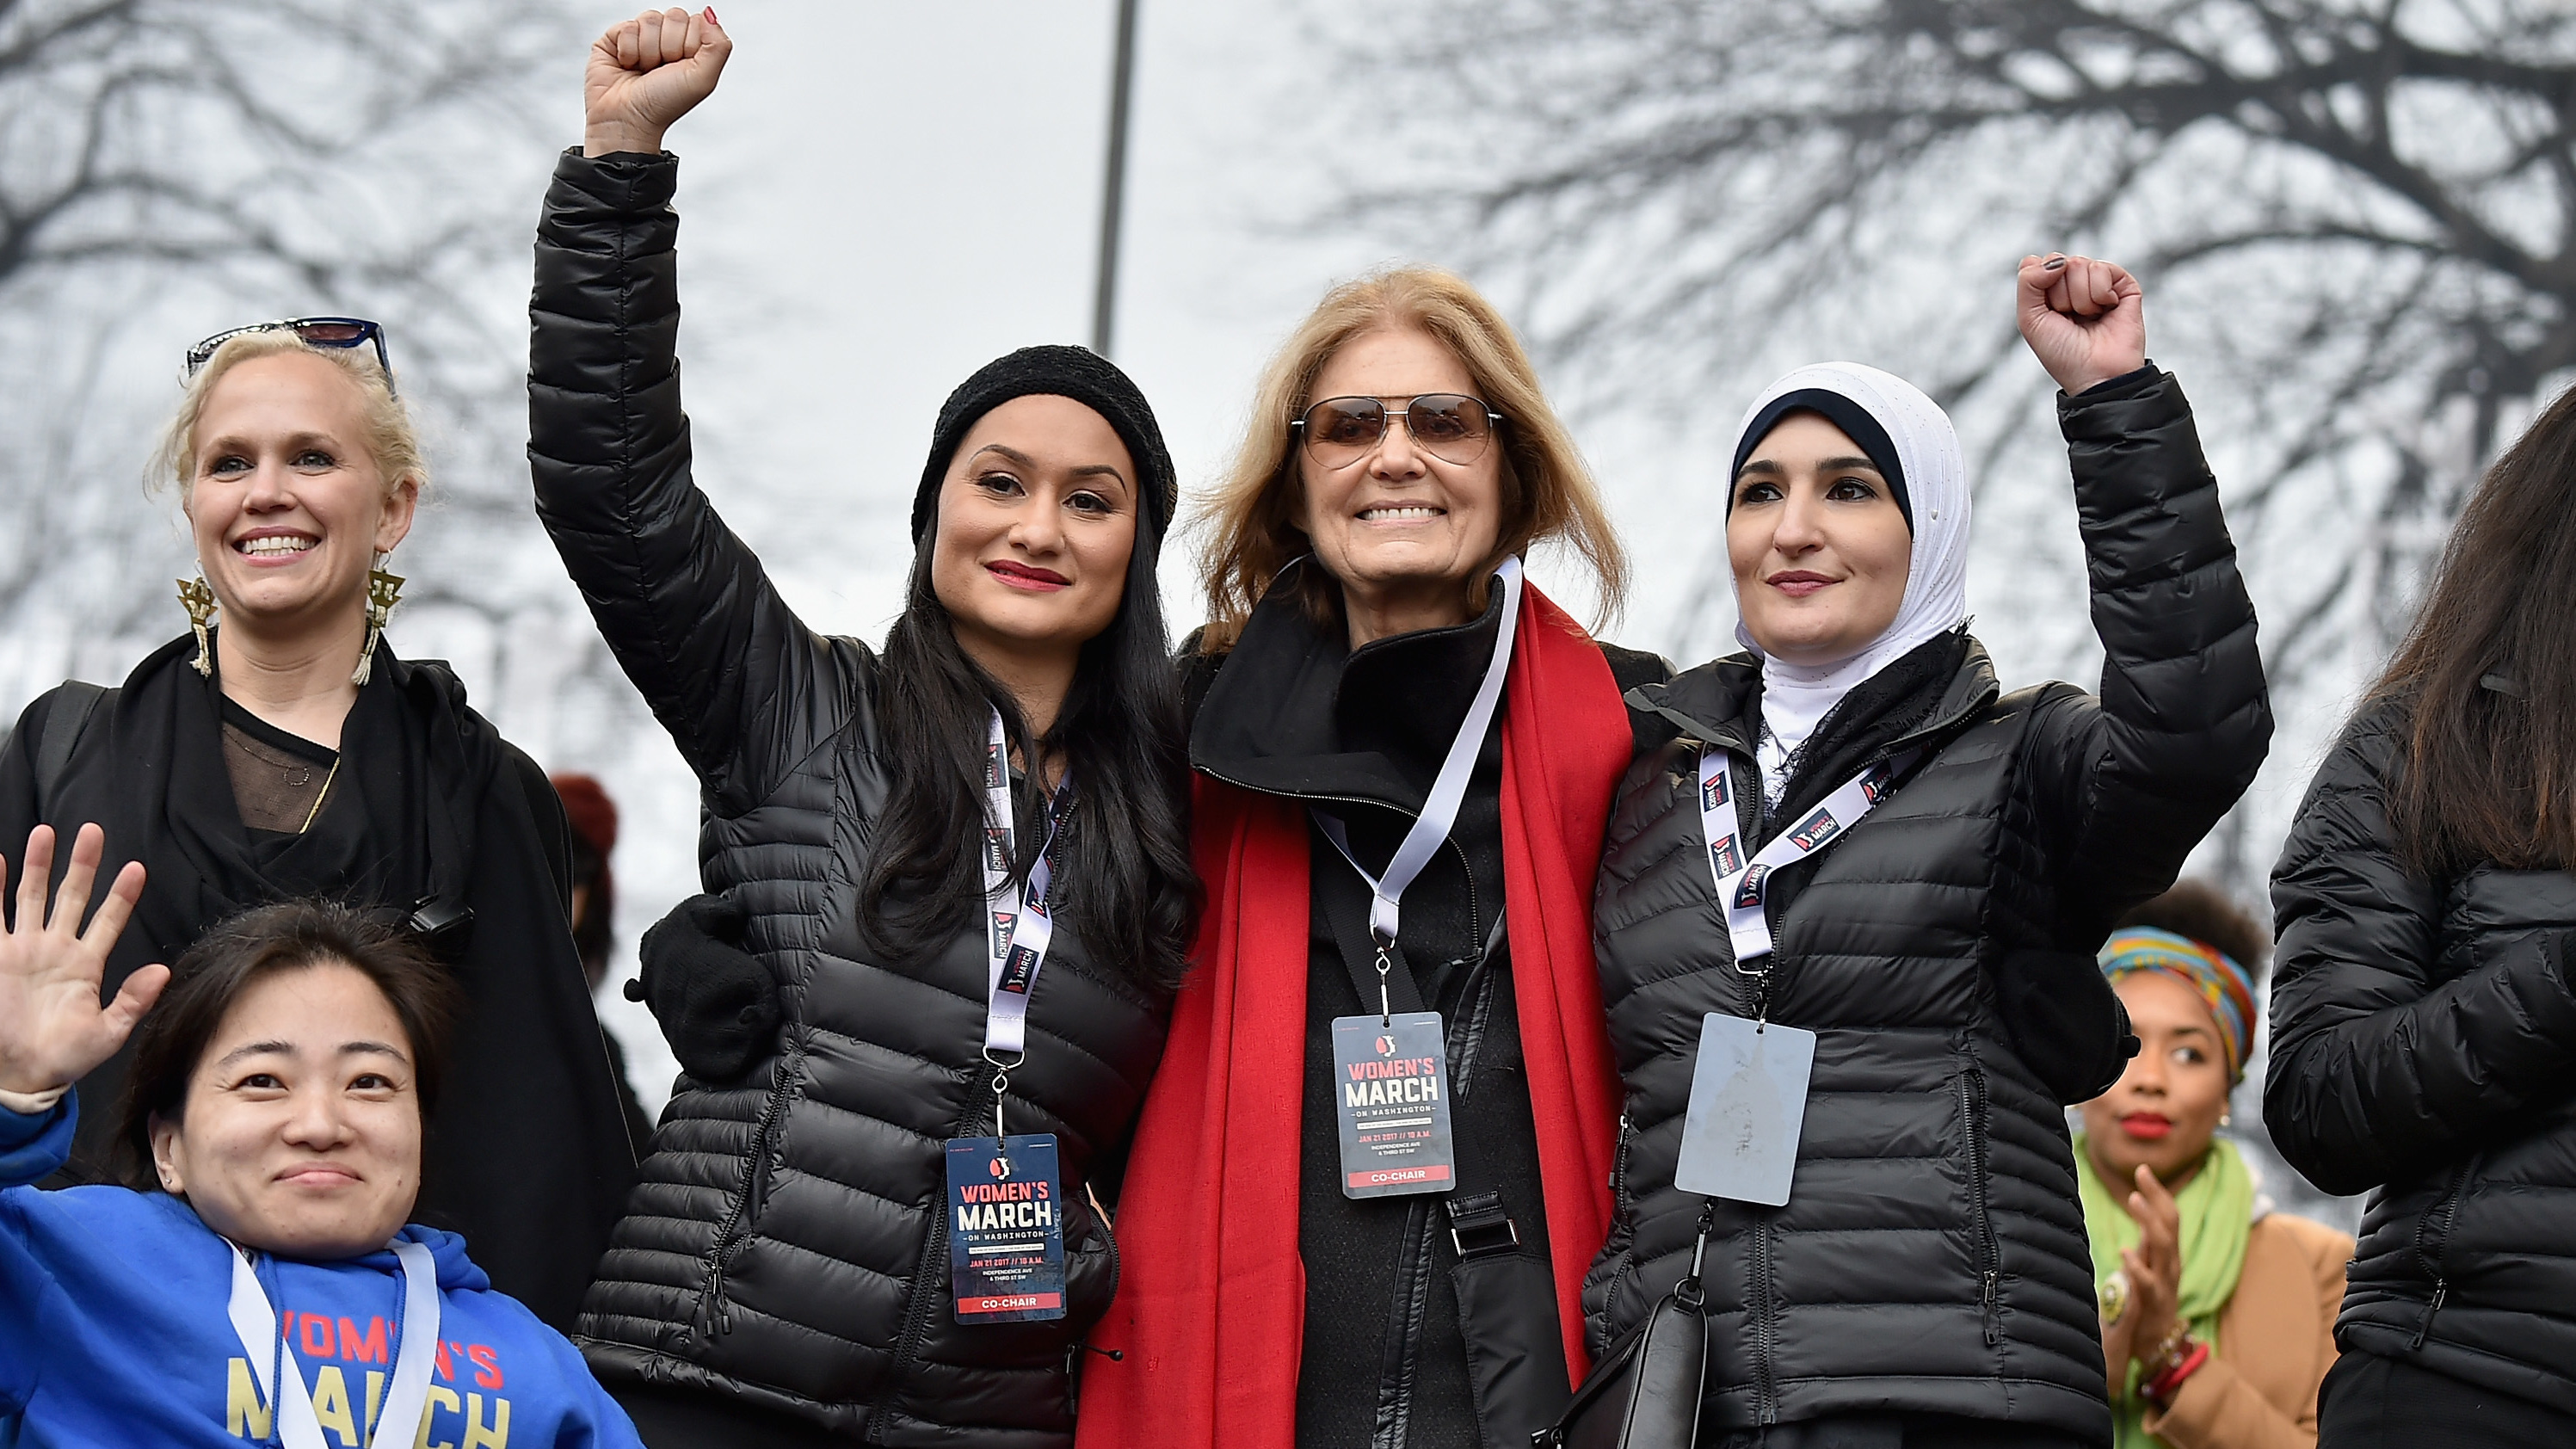 Women's March Divisions Offer Lessons For Democrats On Managing A Big Tent